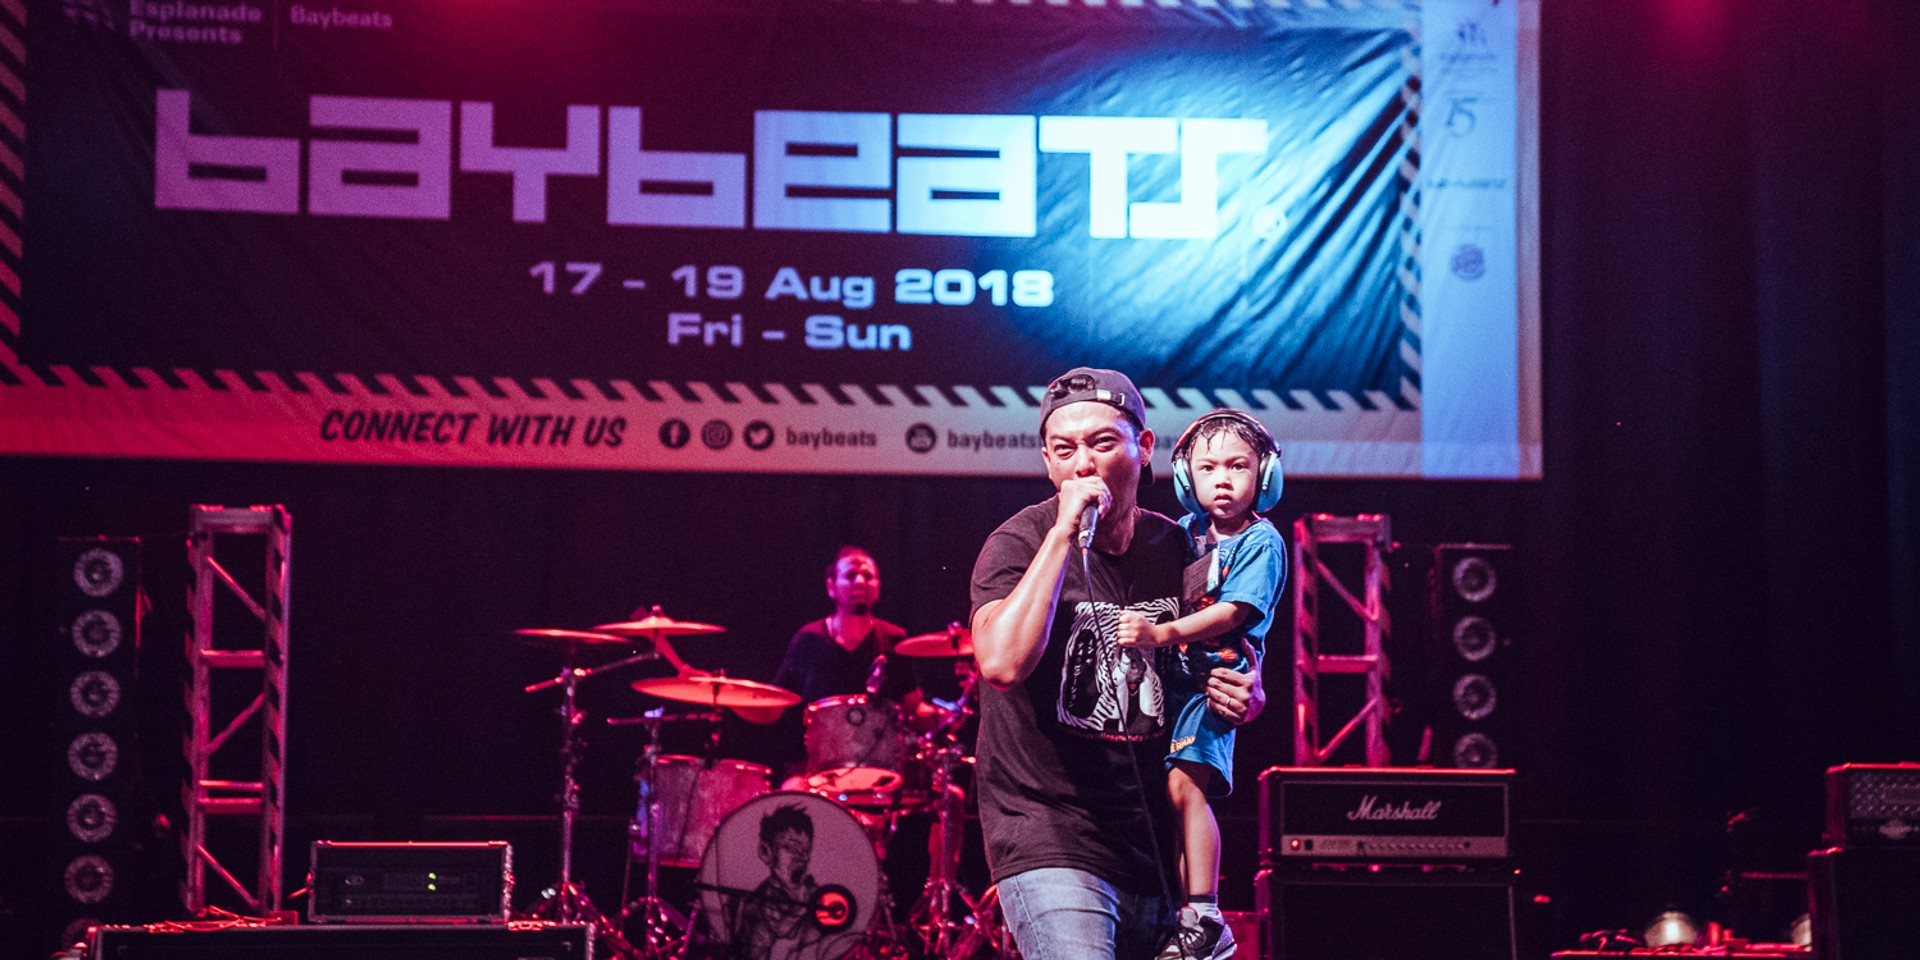 Baybeats Festival announces schedule and stages for 2019 edition